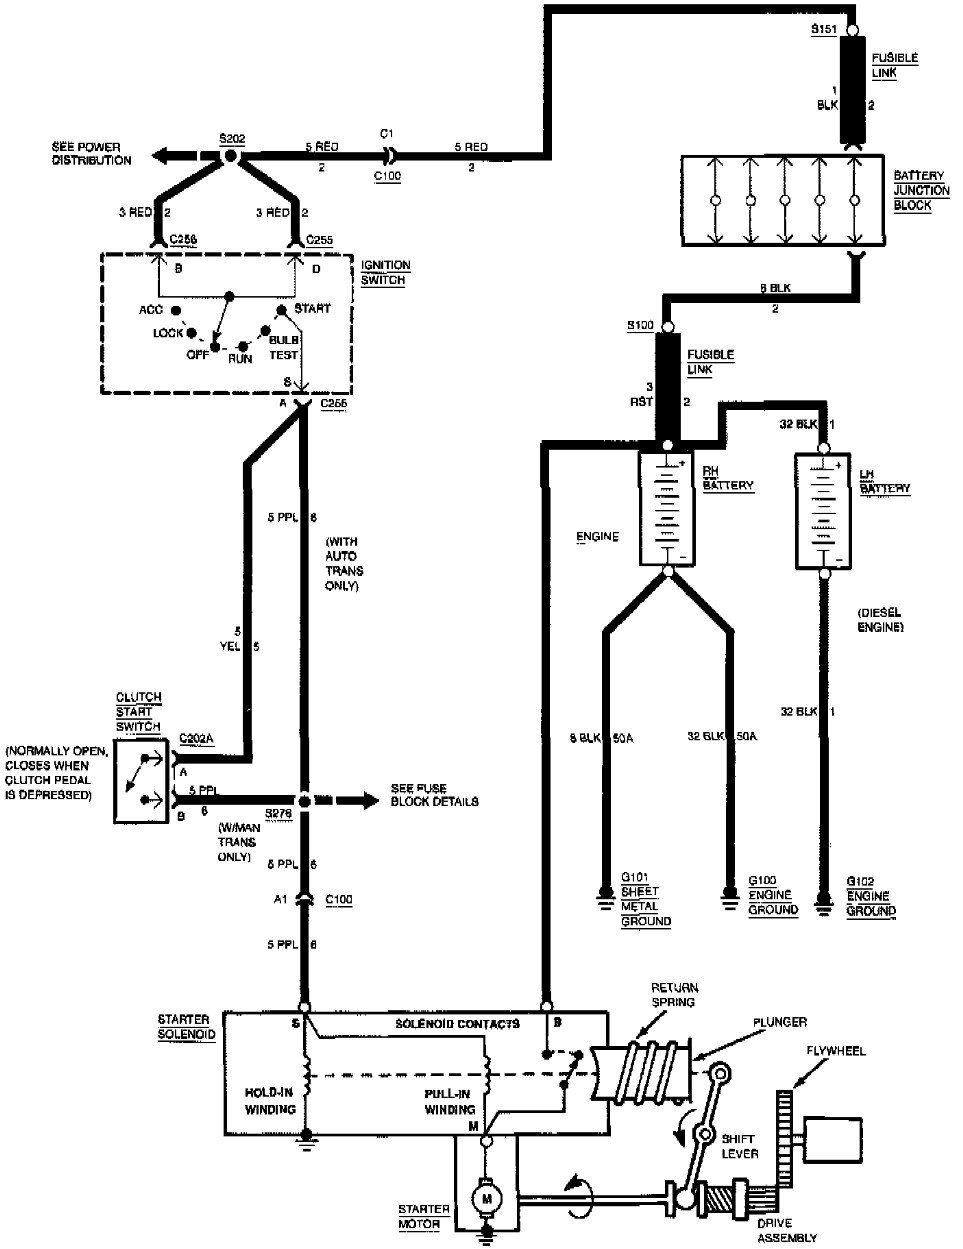 1994 Chevy Pickup Starter Wiring Diagram Content Resource Of 1970 Need Location Relay On 94 1500 Rh Justanswer Com 1972